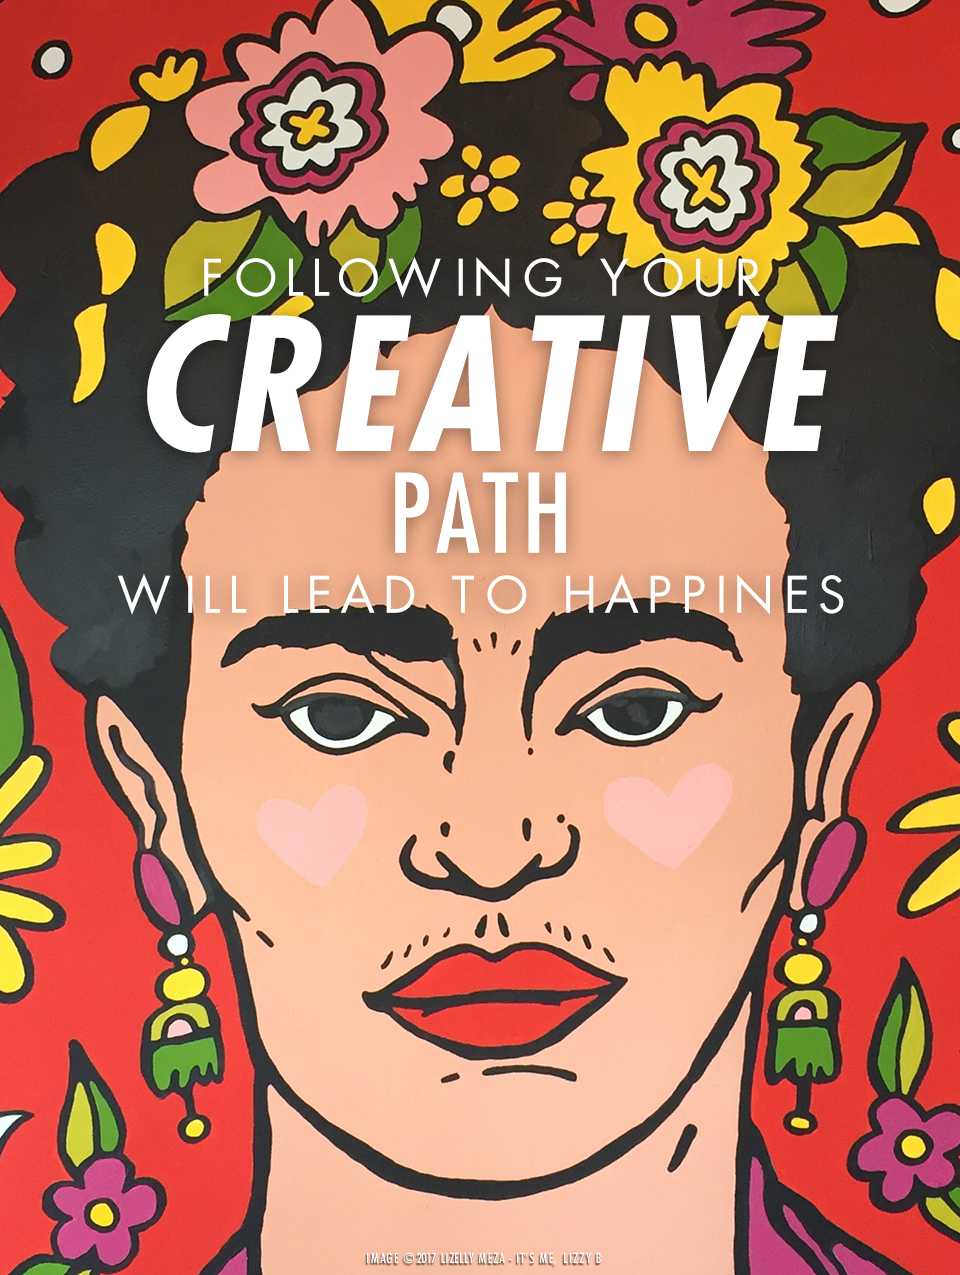 Following Your Creative Path Will Lead to Happiness // It's Me, Lizzy B - Musings on Life, Business, & The Pursuit of Curiosity // Personal blog of Lizelly Meza • Mural by Channin Fulton at Artelexia Ray Street • North Park